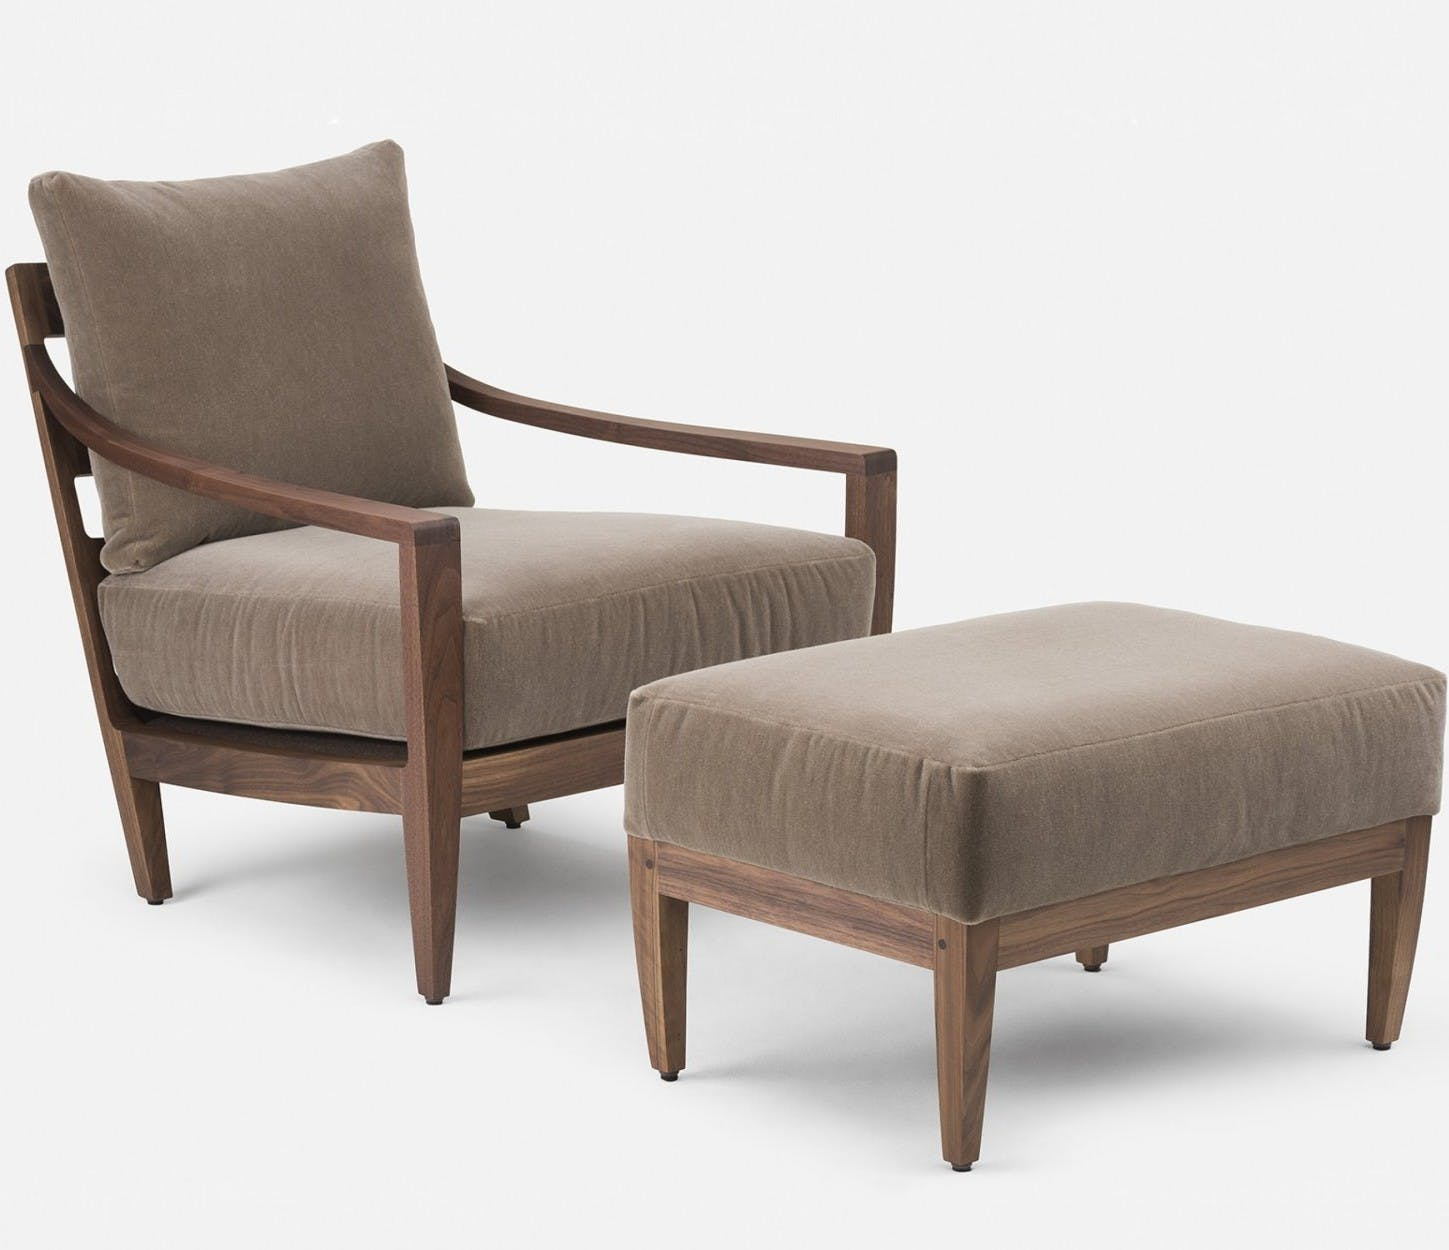 340 Low Lounge Chair And 340O Low Ottoman By Matthew Hilton In Walnut And Velvetweb 1840X1250